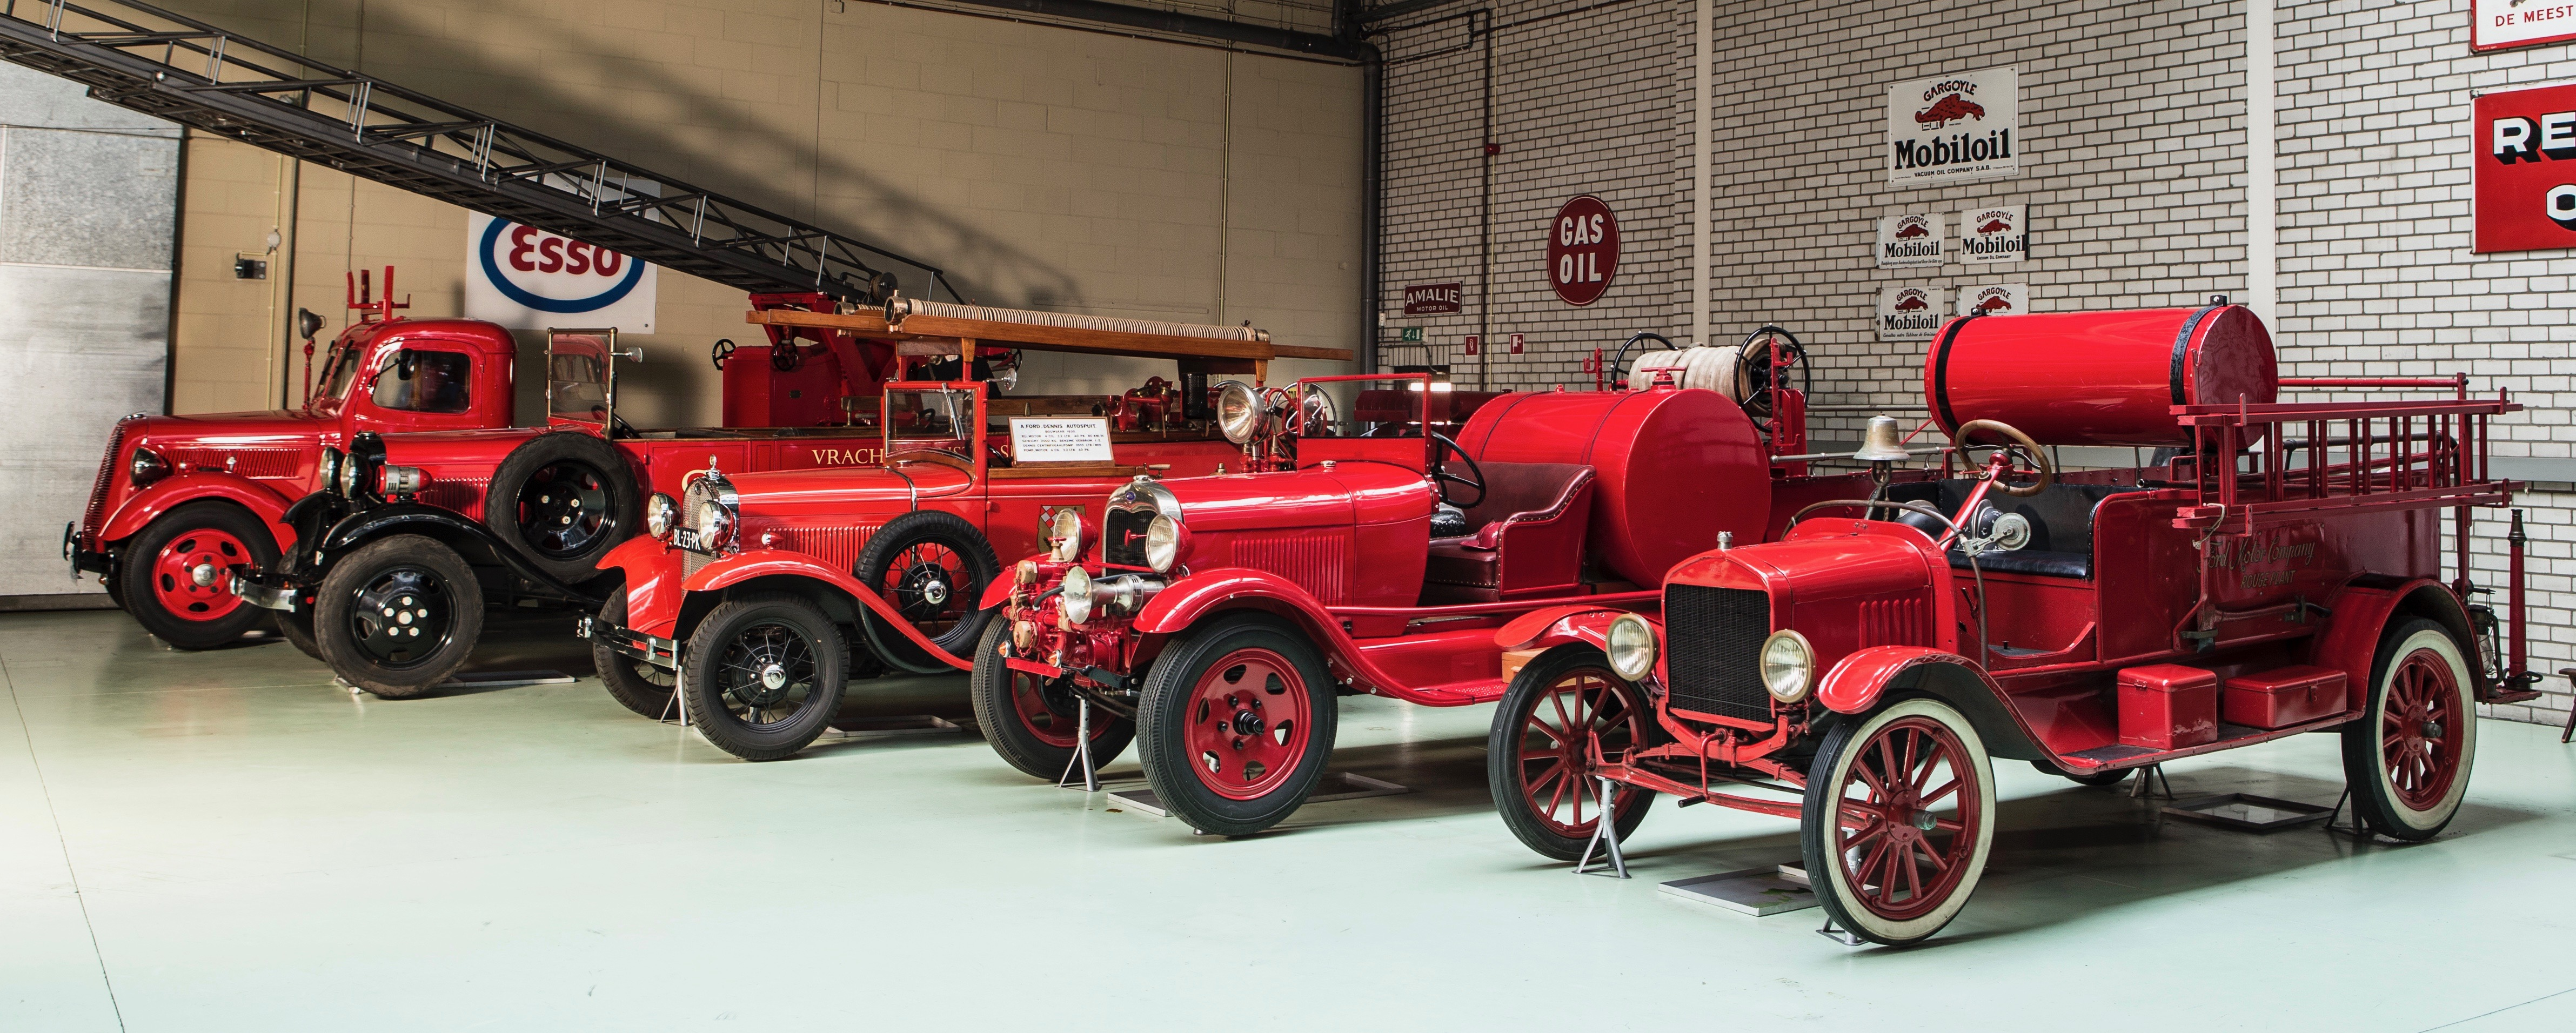 European Ford museum collection going to auction - ClassicCars.com ...